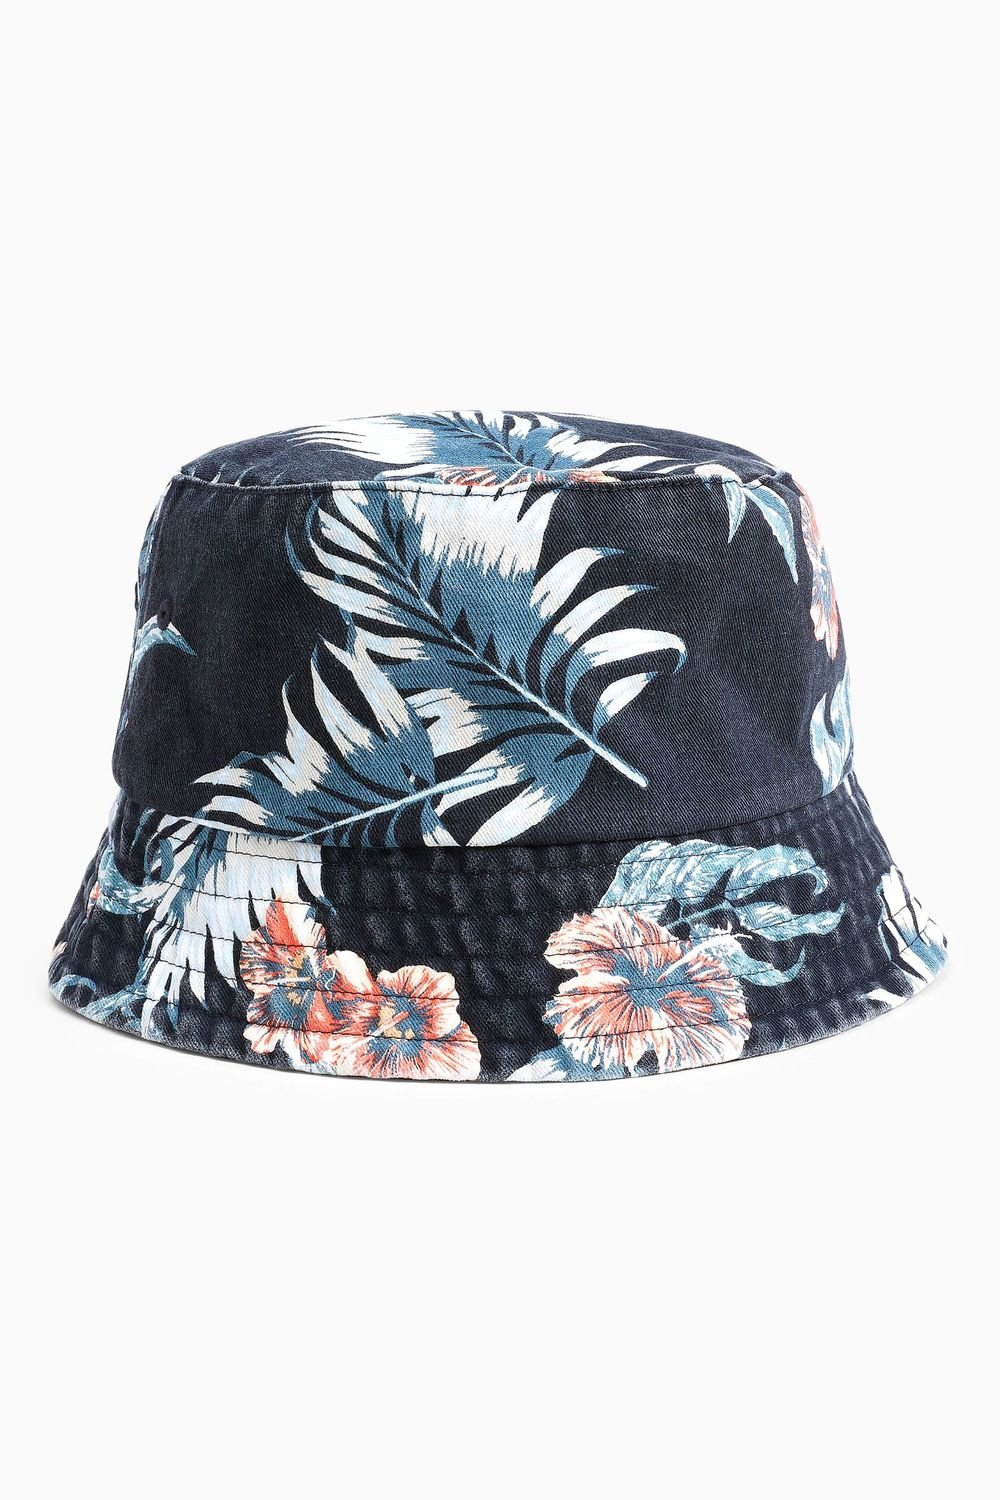 Next Reversible Bucket Hat Online  28f2a276731